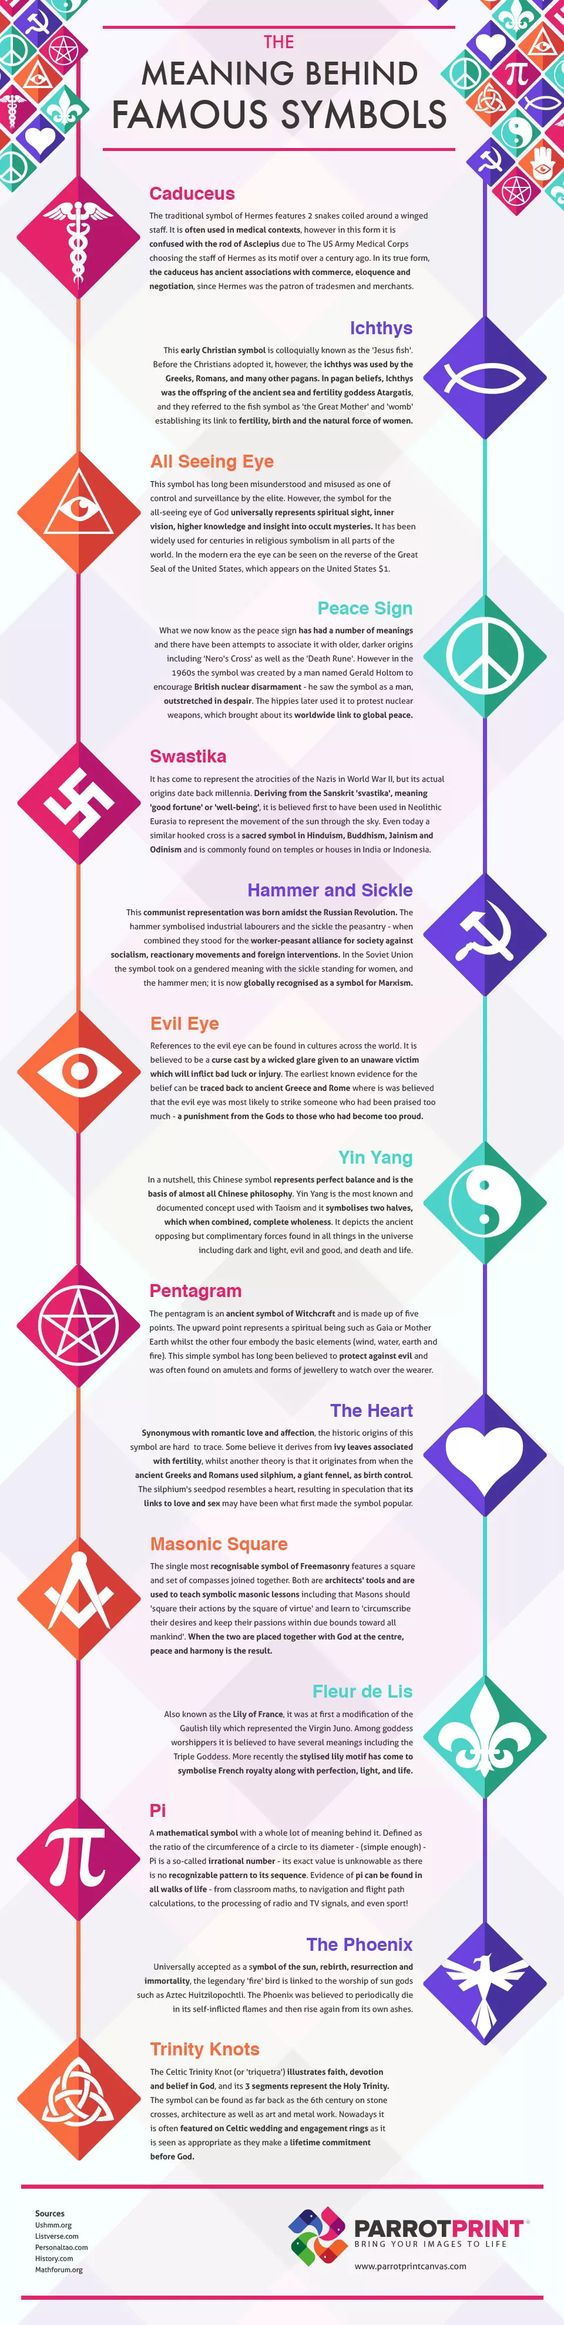 The Meaning Behind Famous Symbols #Infographic #History: